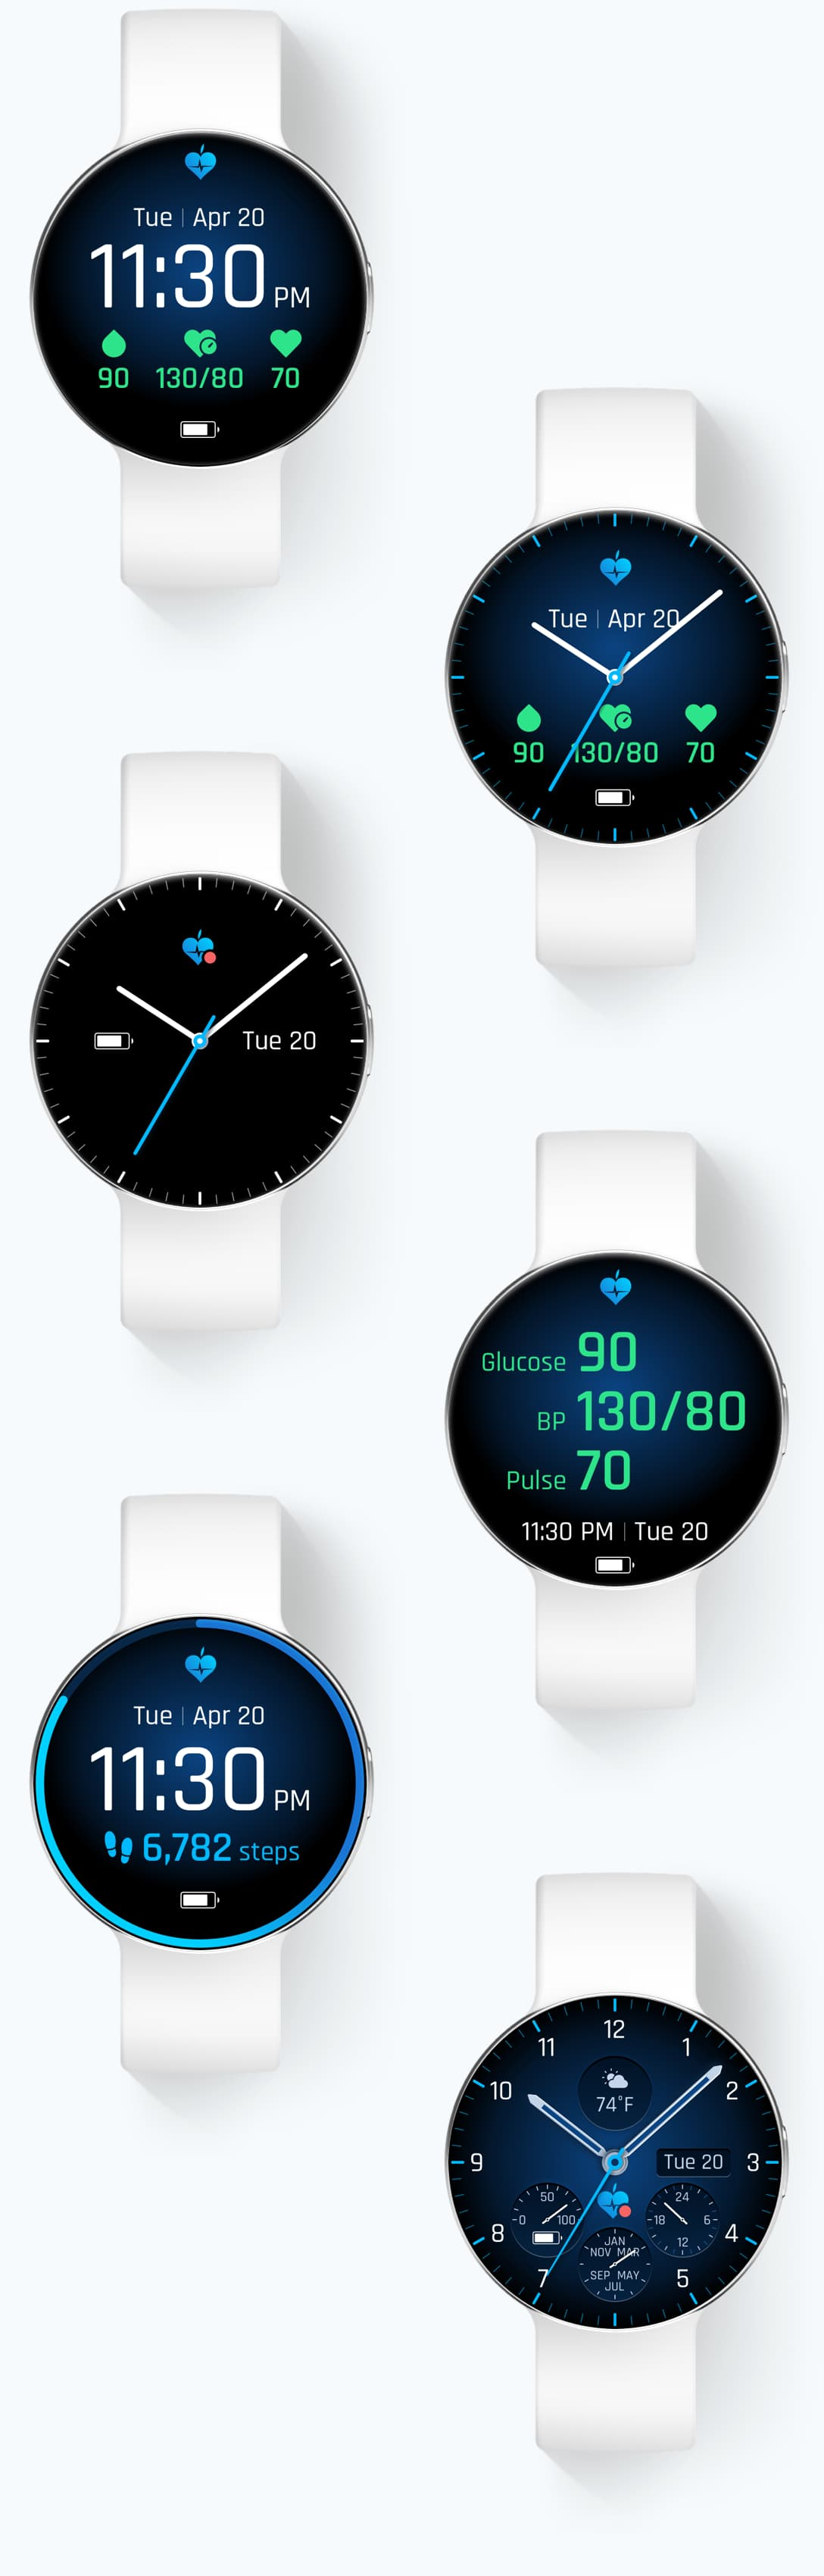 Renderings showing various custom watch faces a user can create and customize